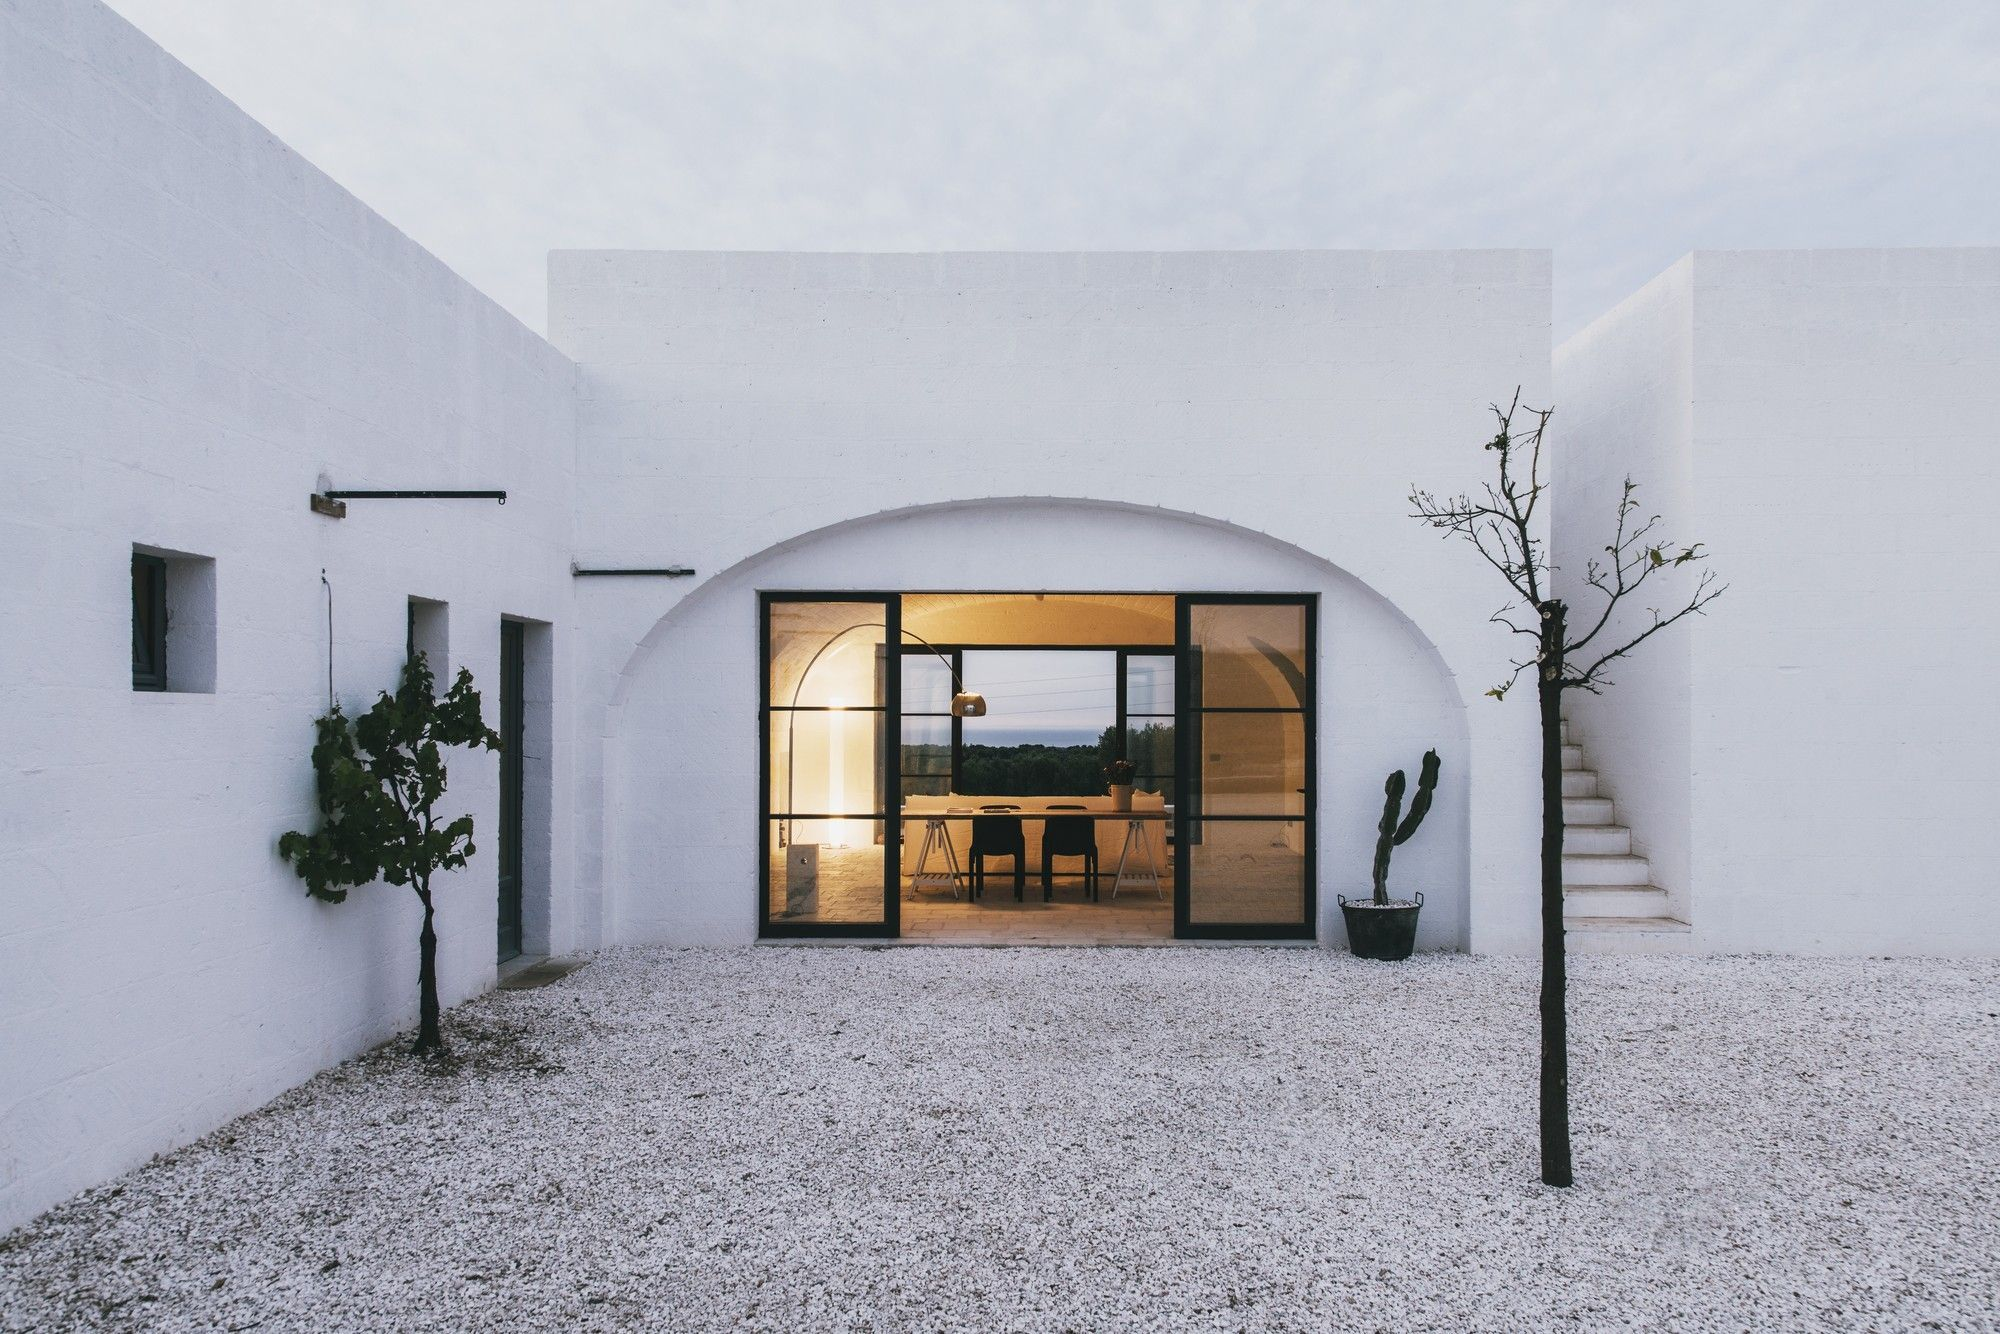 Completed in in ostuni italy images by salva lopez masseria